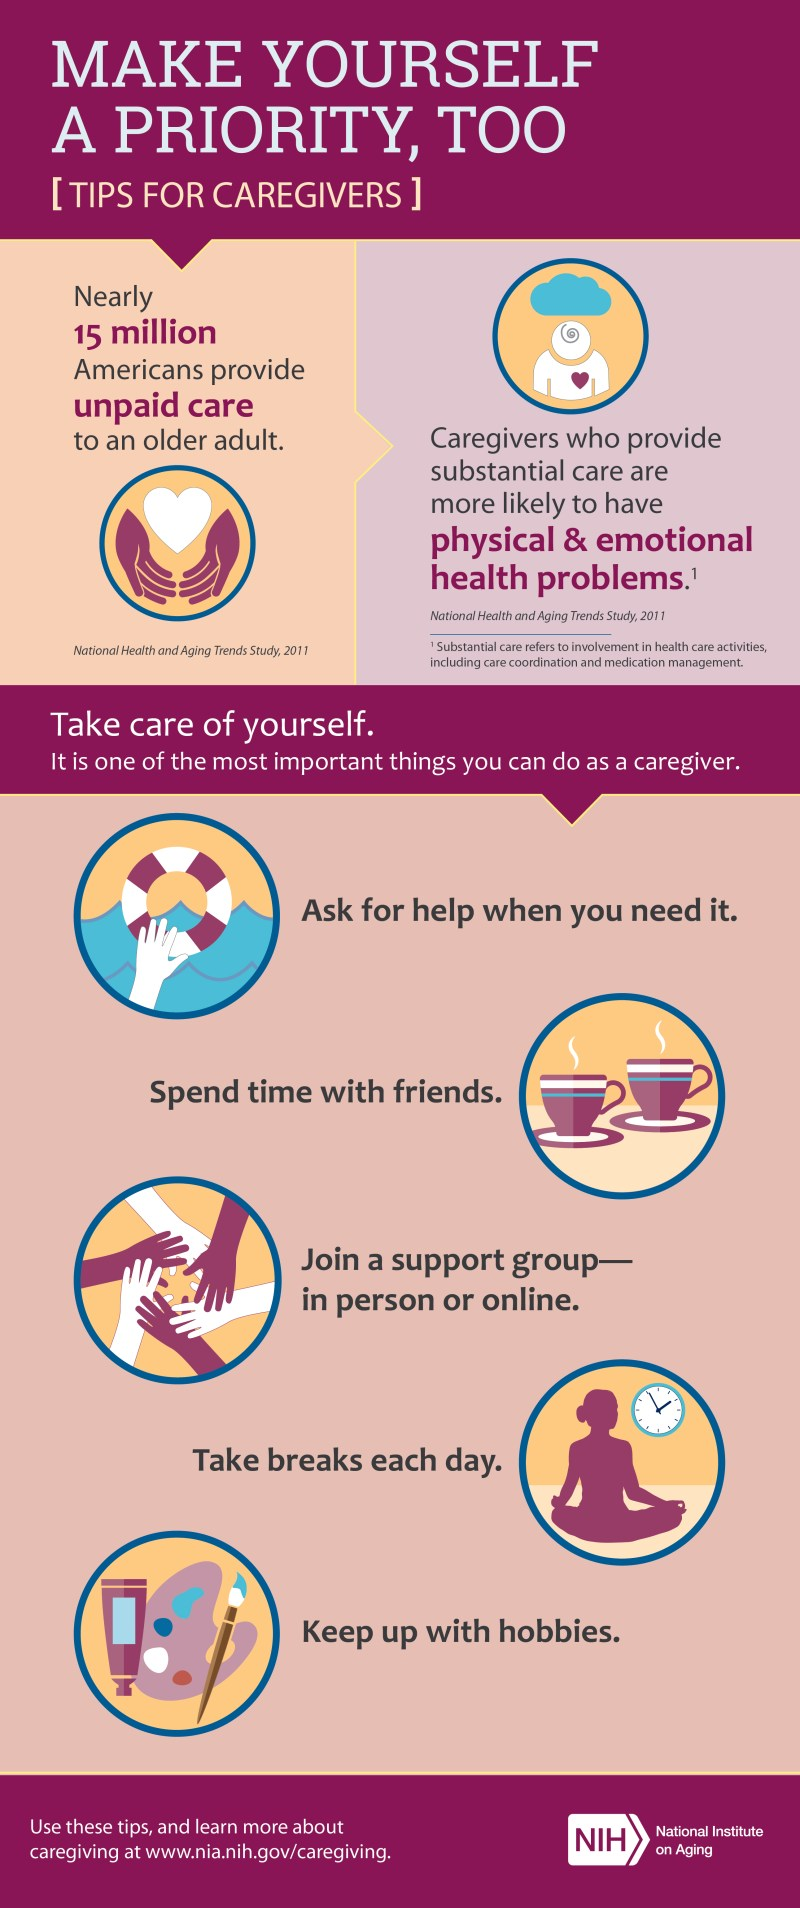 QUE.com.nia_tips-for-caregivers_infographic.nia.nih.gov.web